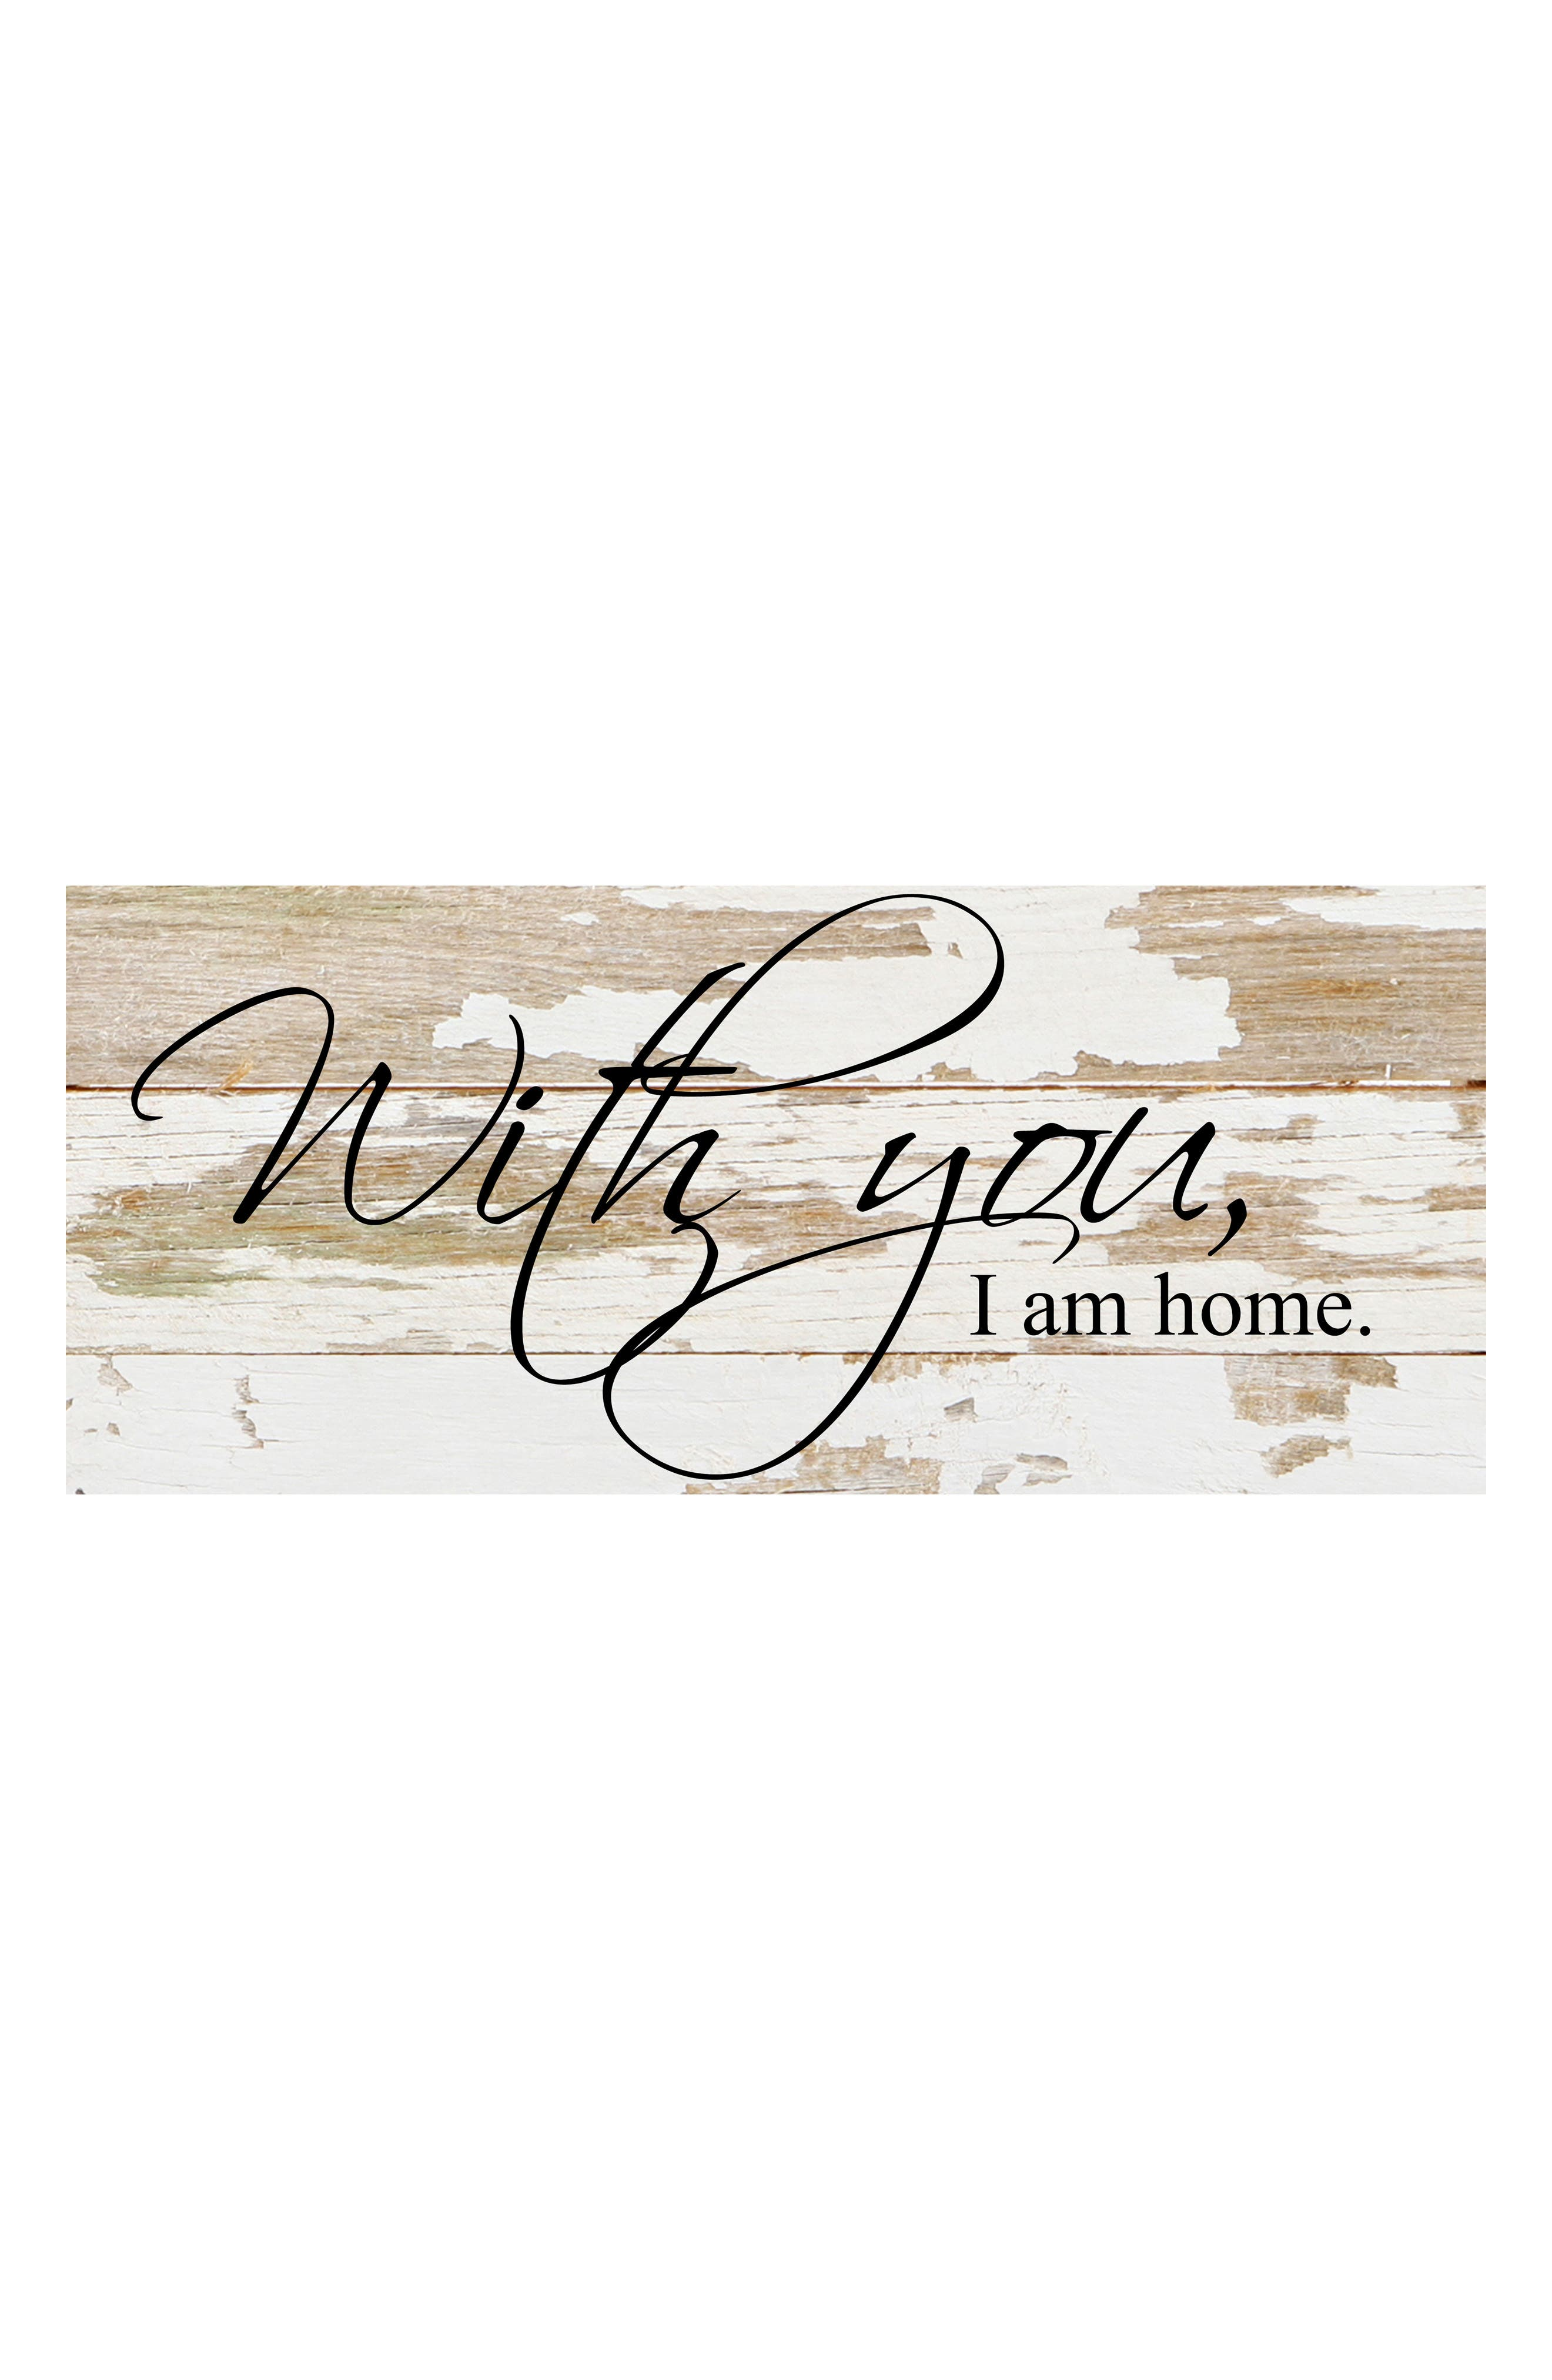 Alternate Image 1 Selected - Second Nature by Hand With You I Am Home Repurposed Wood Wall Art